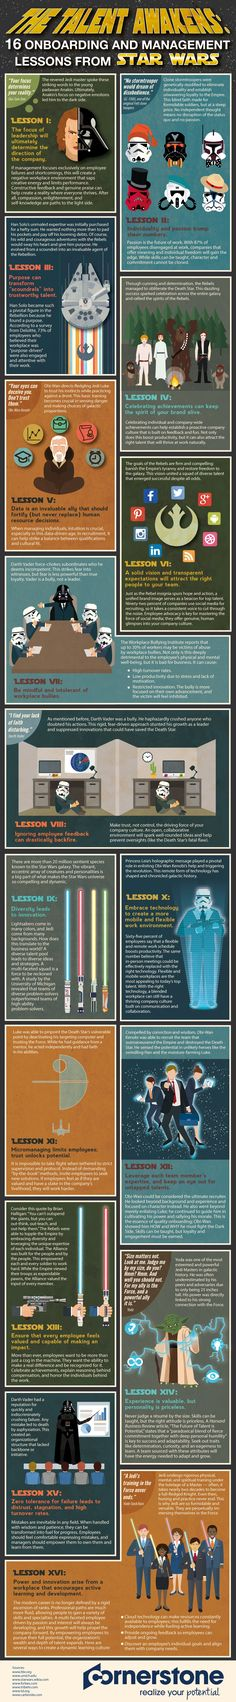 The Talent Awakens: 16 Onboarding and Management Lessons From Star Wars…